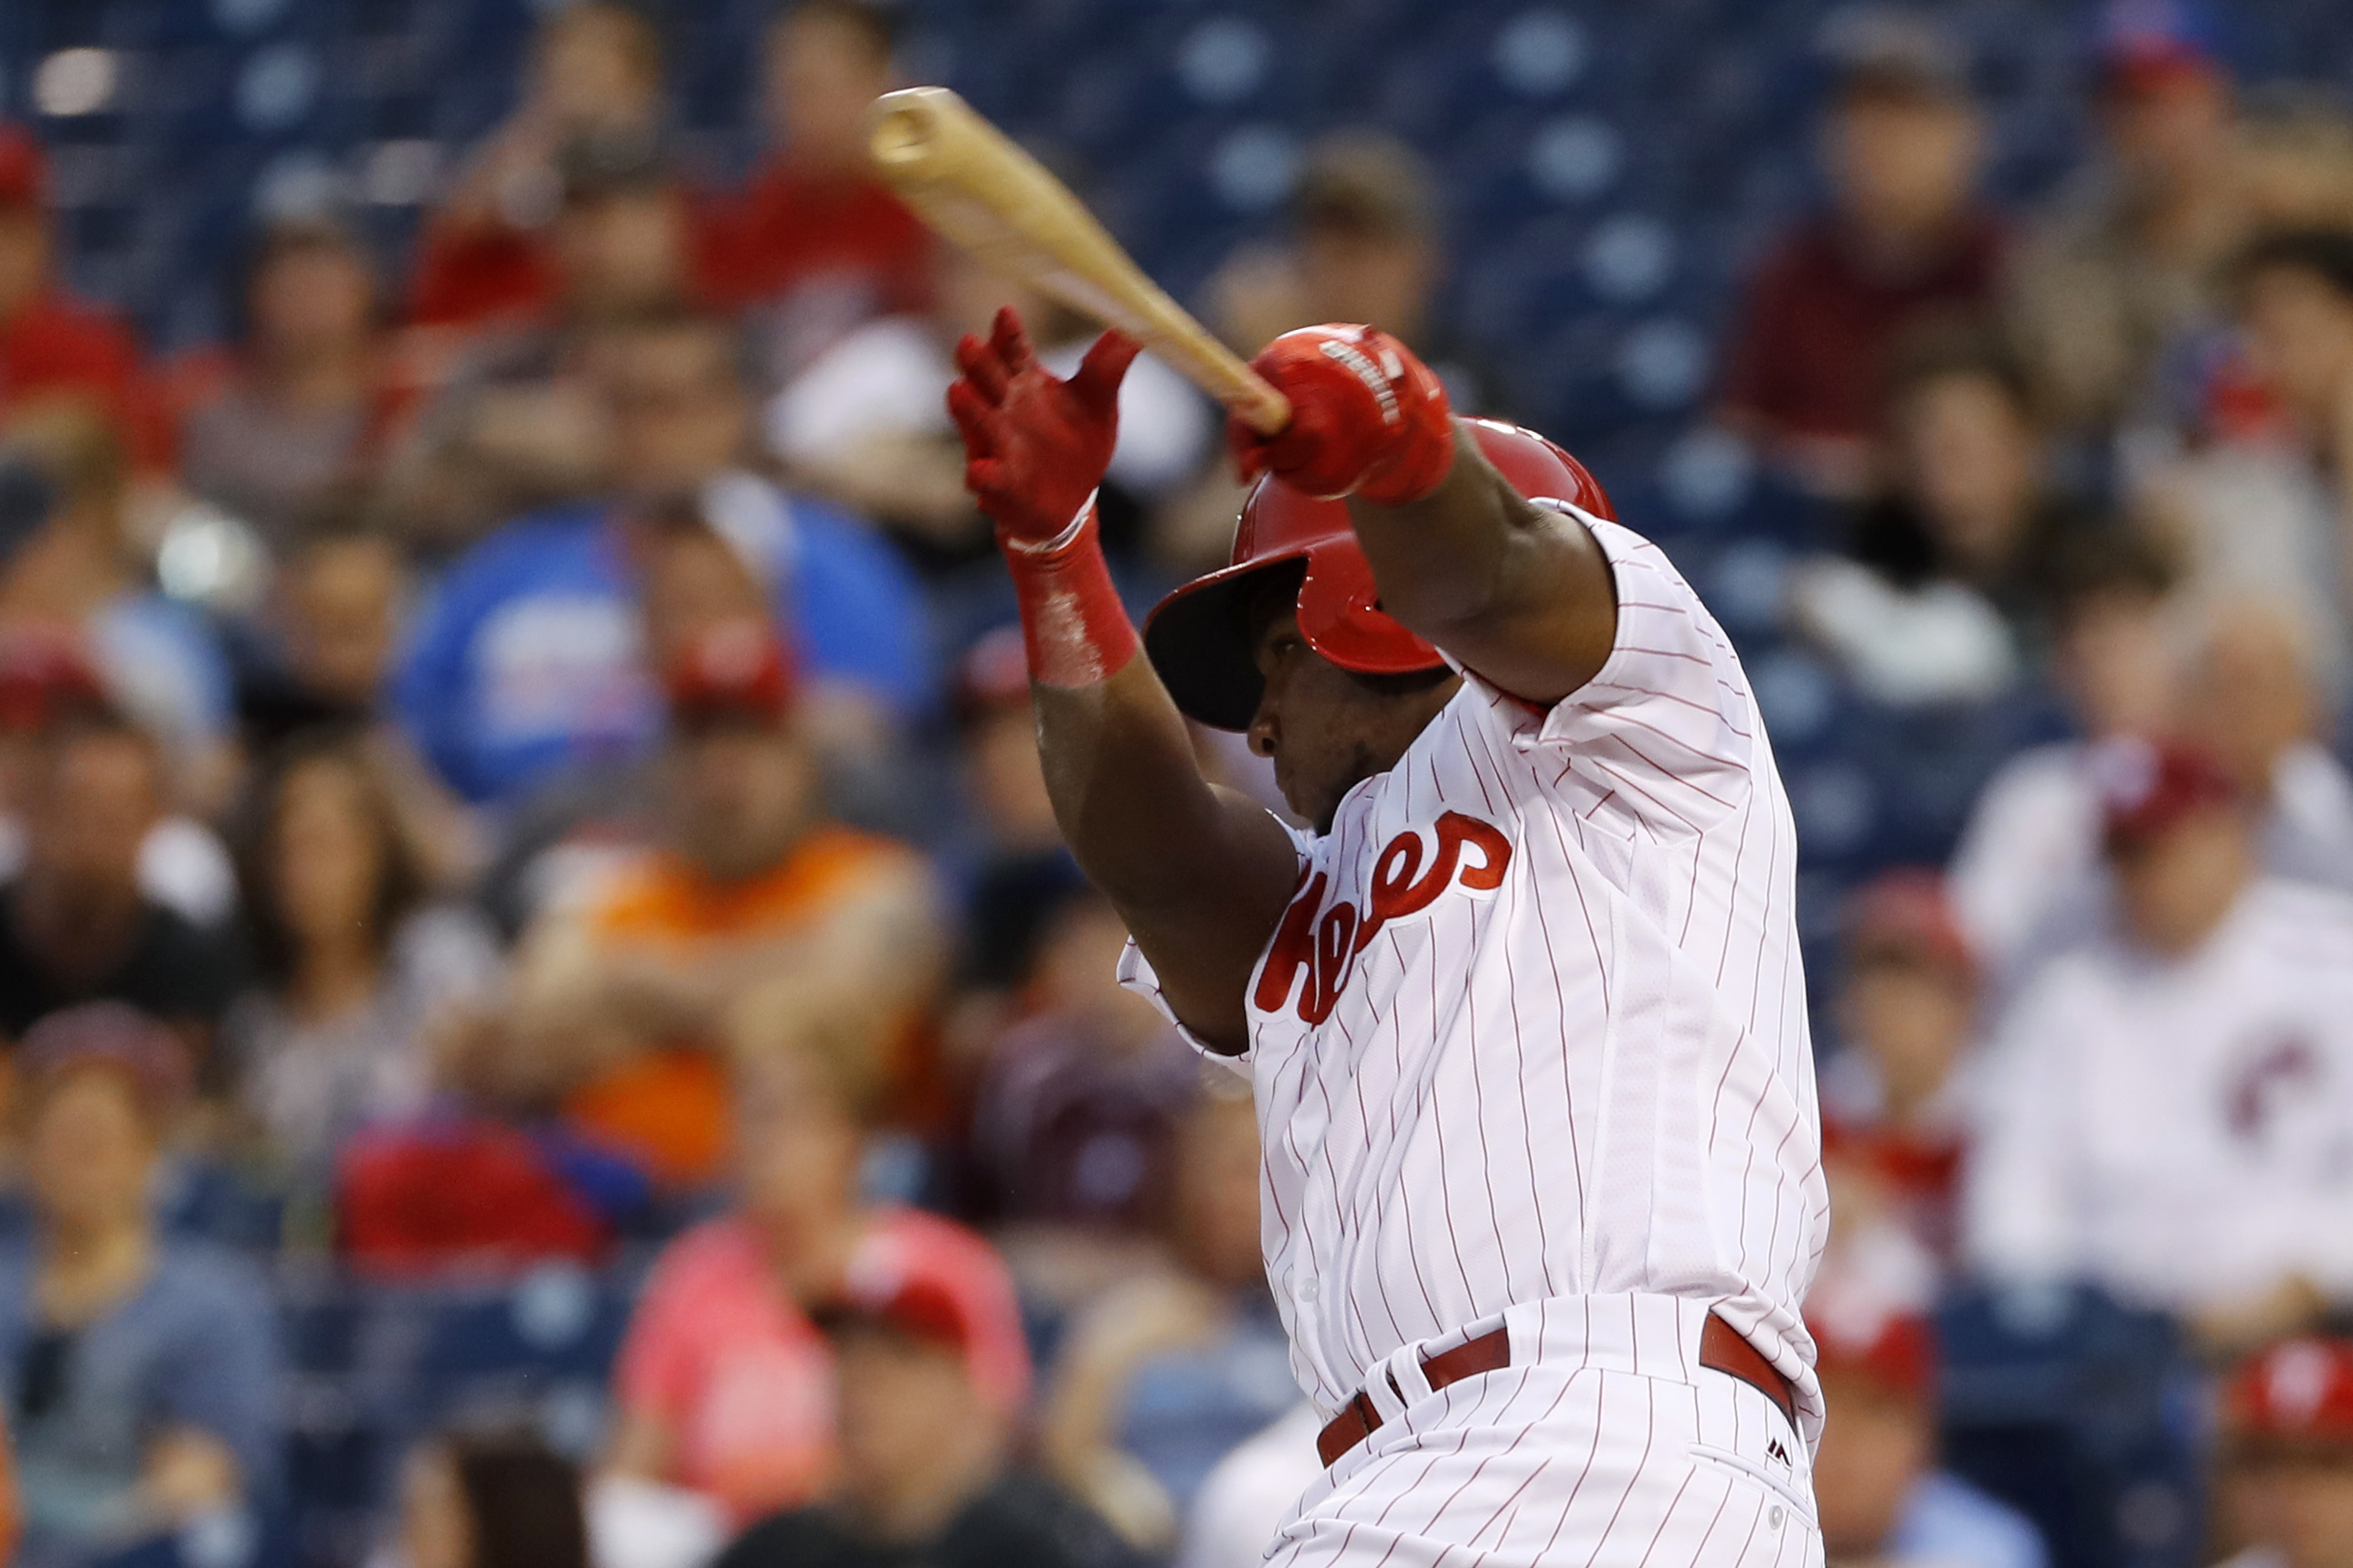 Philadelphia Phillies' Maikel Franco follows through after hitting a run-scoring fielder's choice off Baltimore Orioles pitcher Vance Worley during the first inning of an exhibition baseball game, Friday, April 1, 2016, in Philadelphia. (AP Photo/Matt Slo